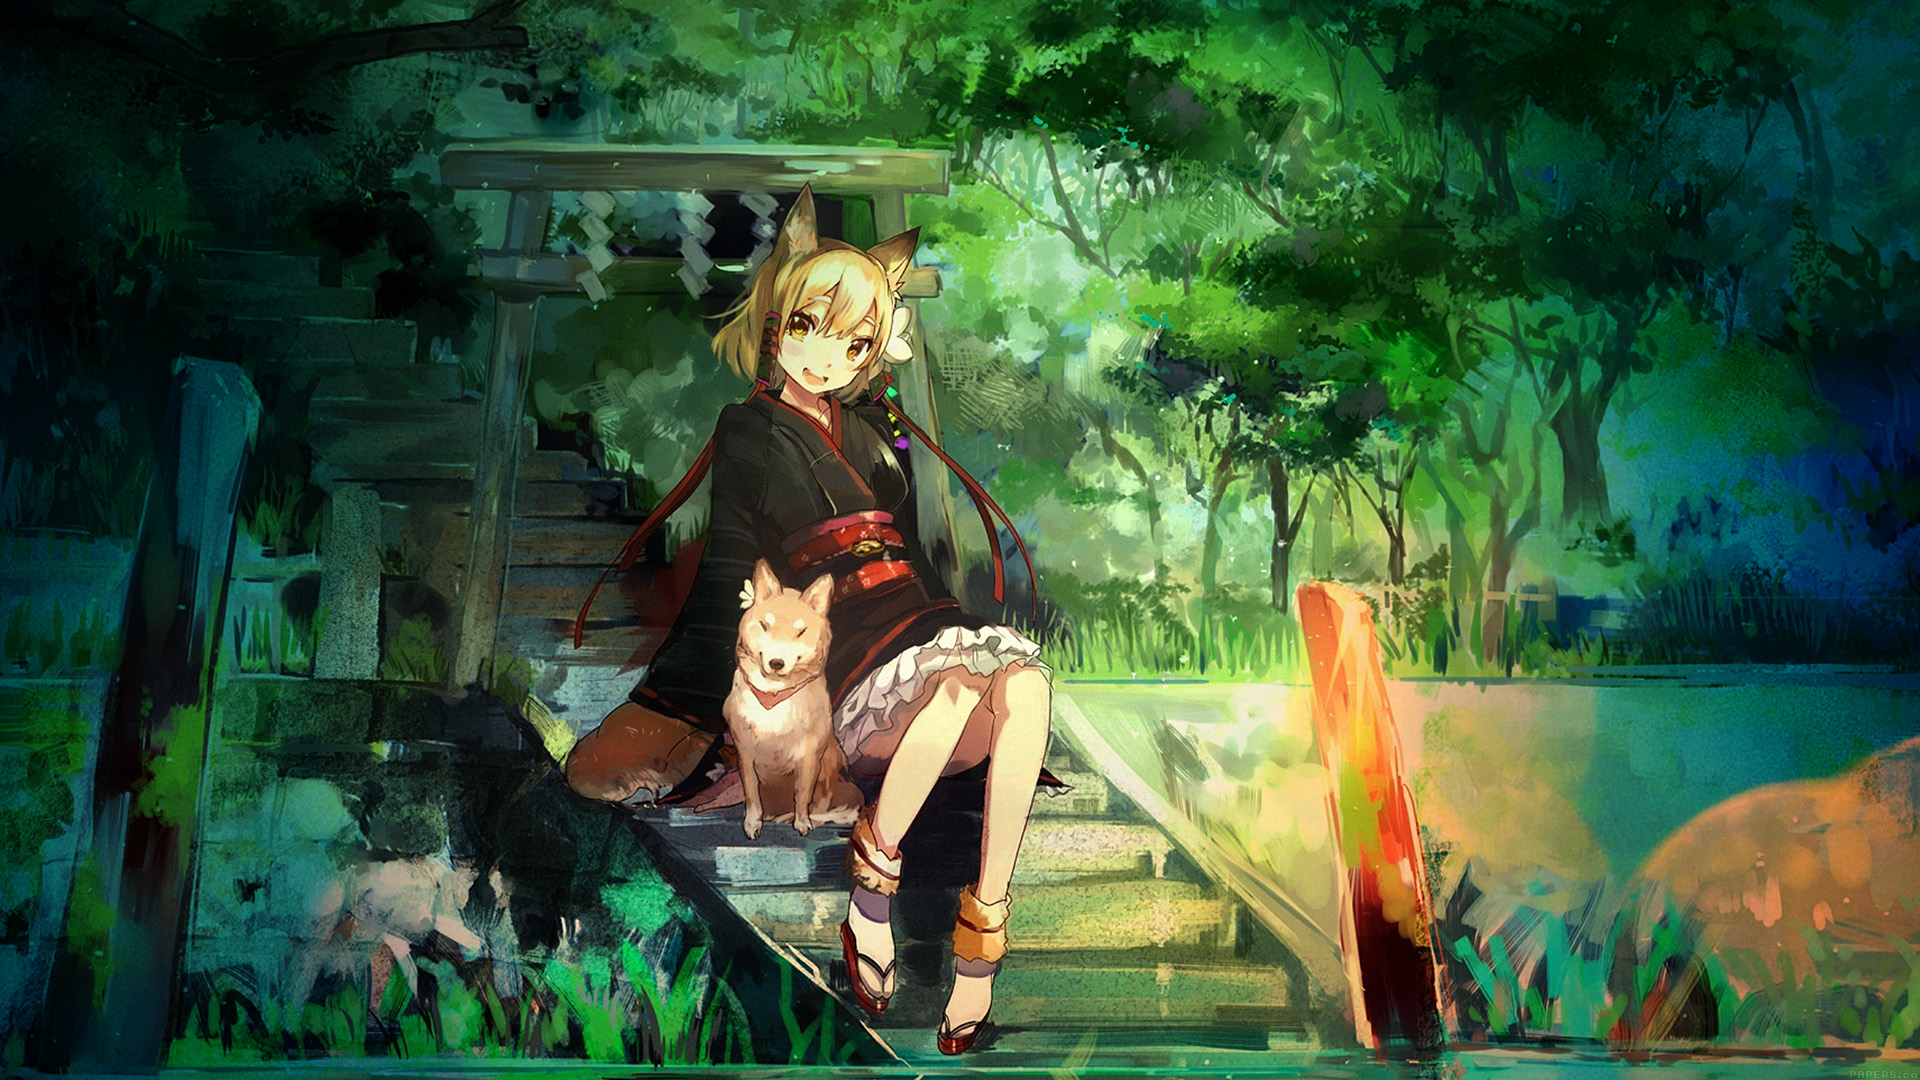 Cute Dog Wallpapers Fot Google Aj47 Girl And Dog Green Nature Anime Art Illust Papers Co